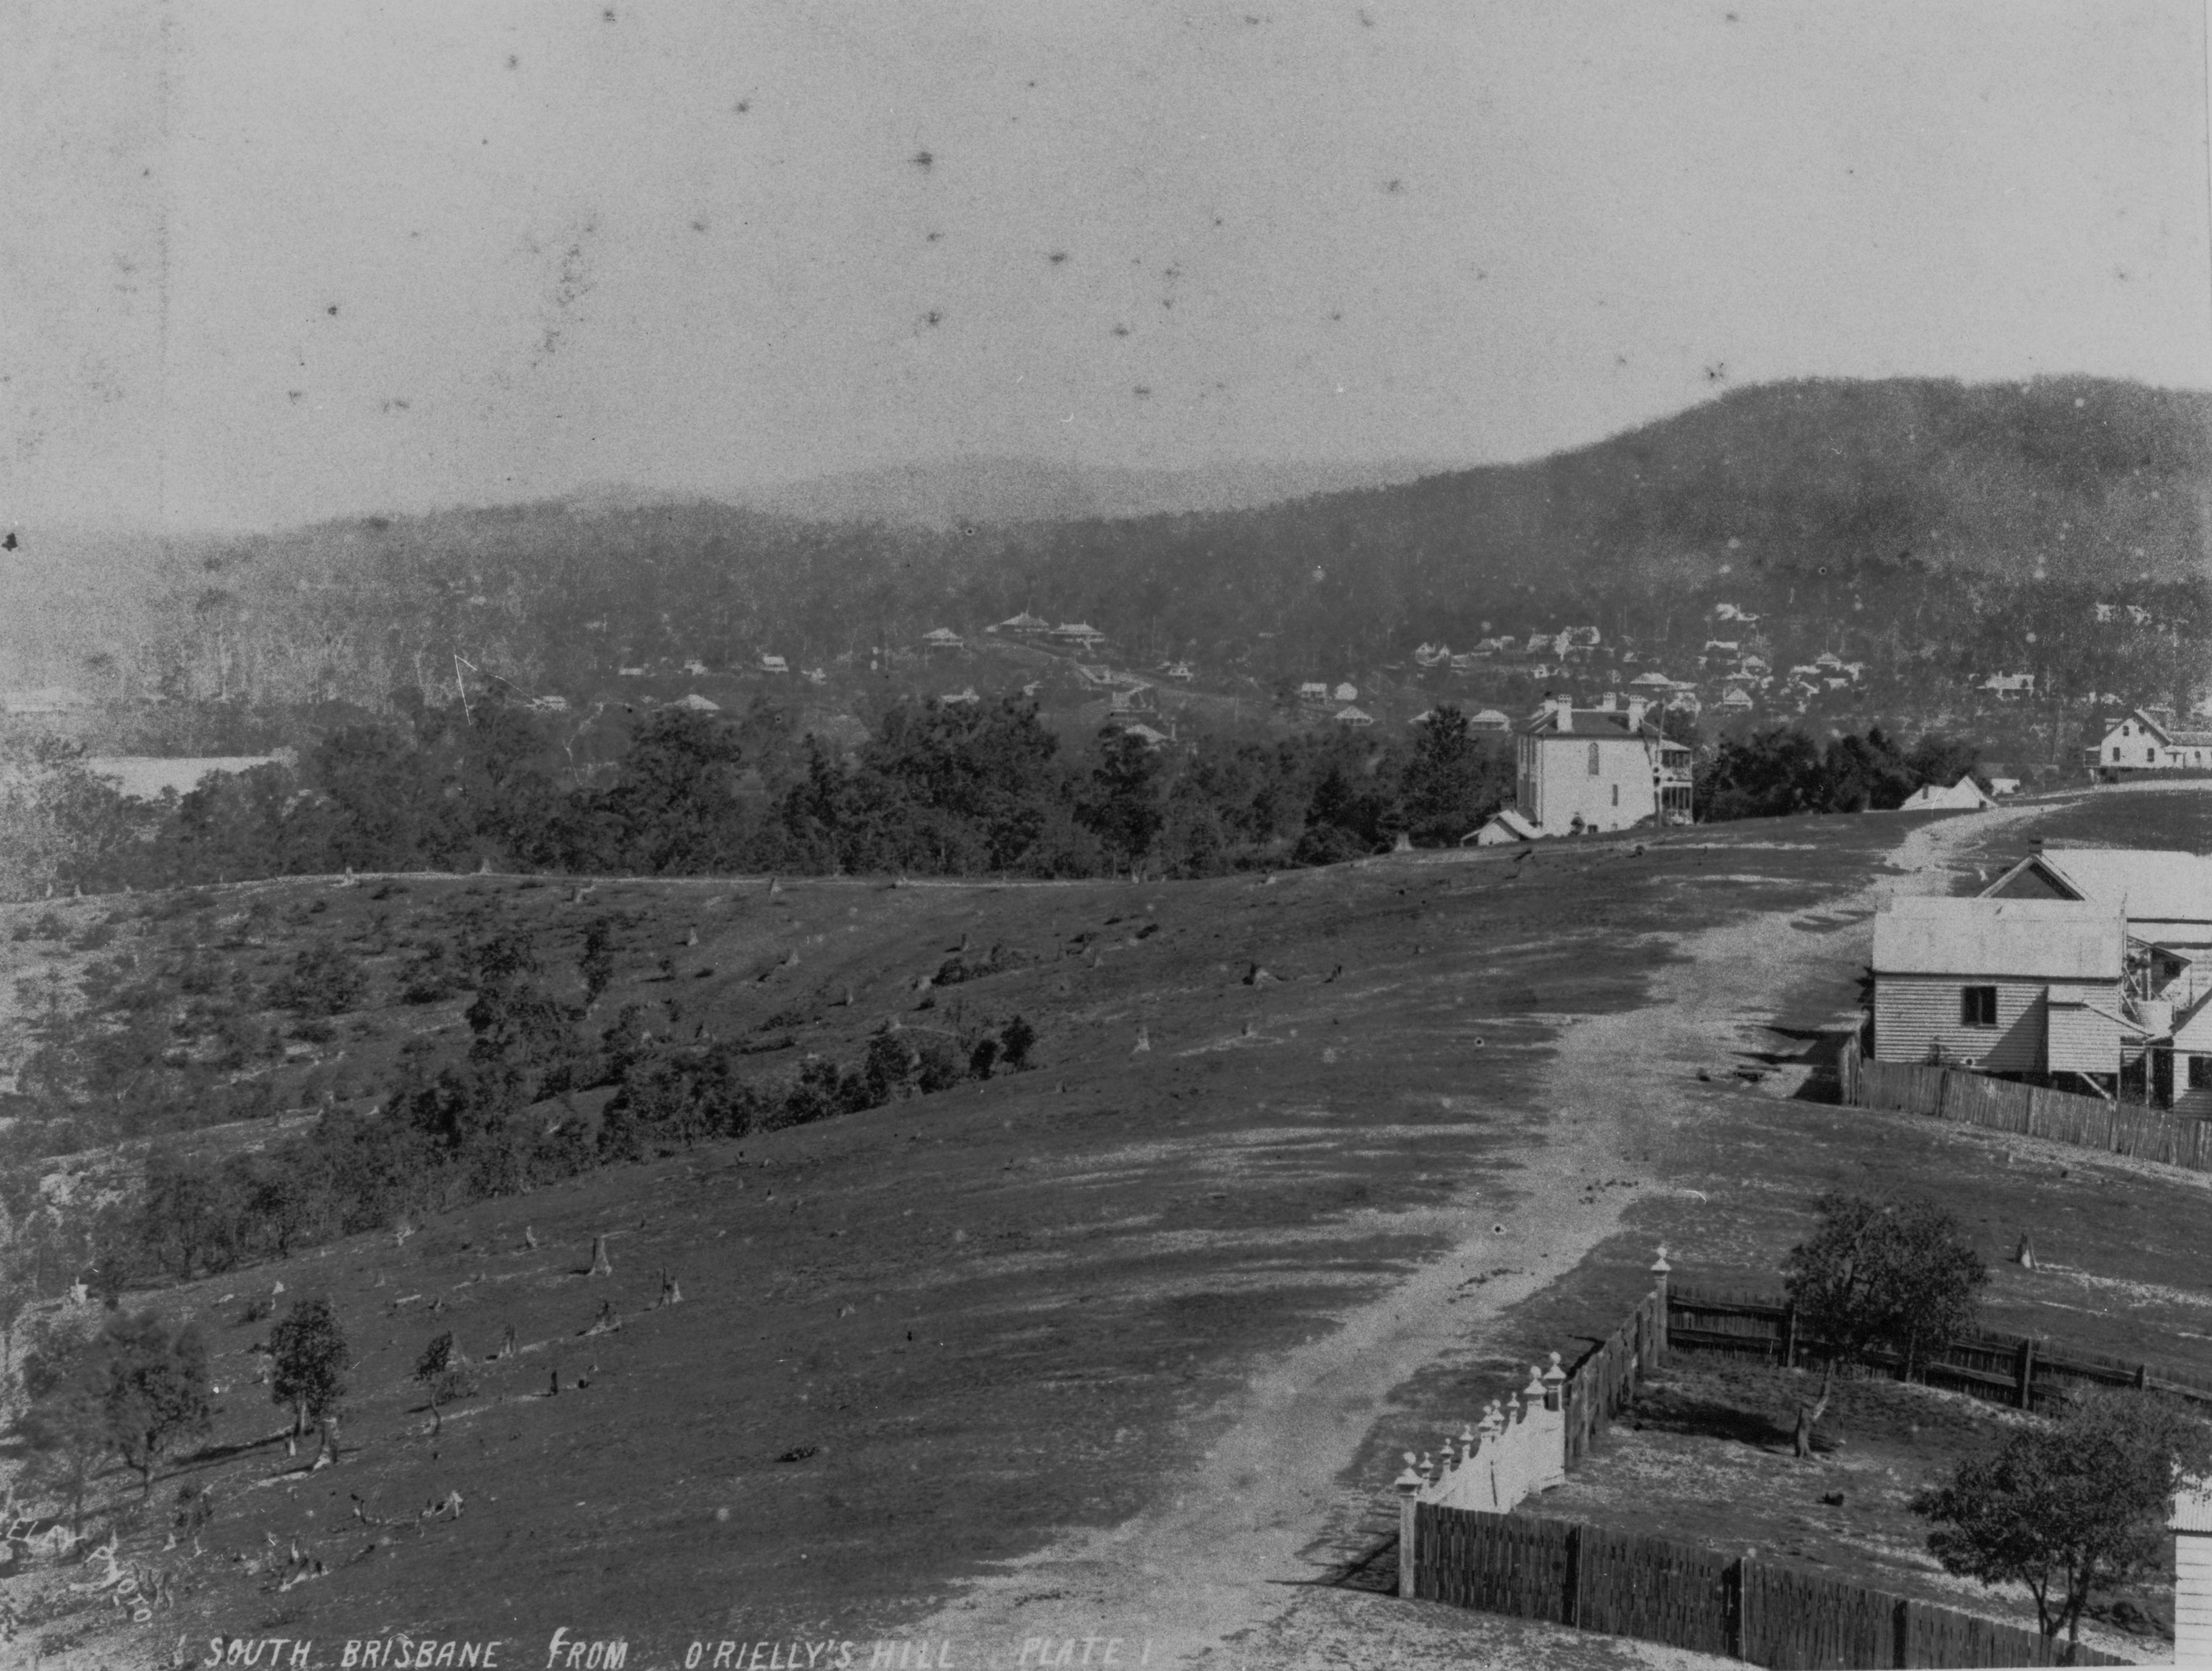 South Brisbane from ORiellys Hill 1884